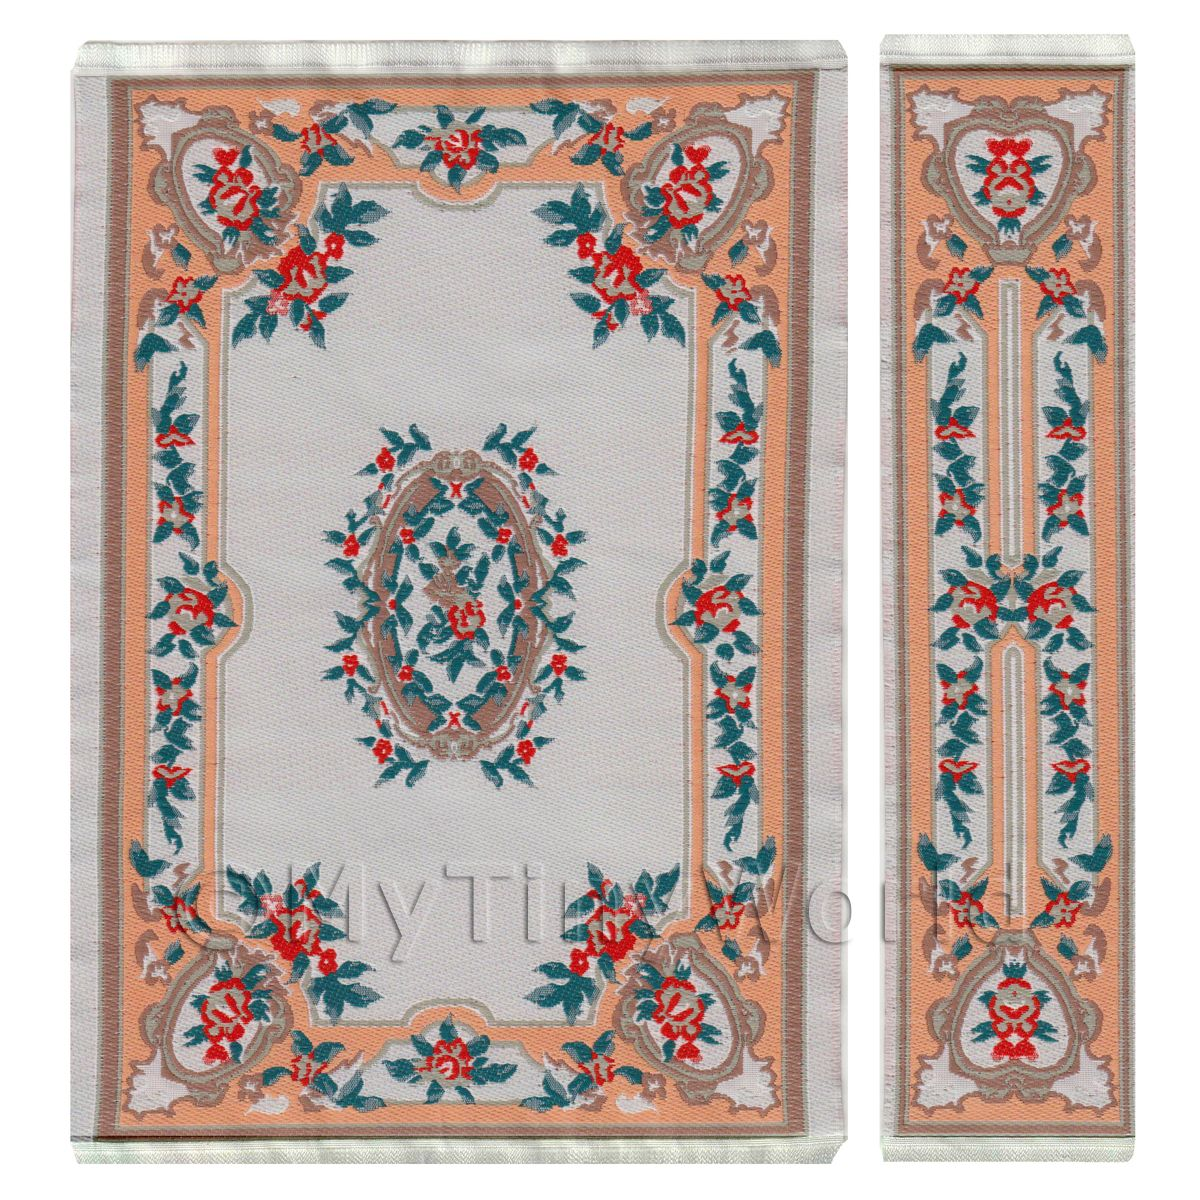 Dolls House Medium French Provincial Rectangular Rug And Runner (FPMRR05)